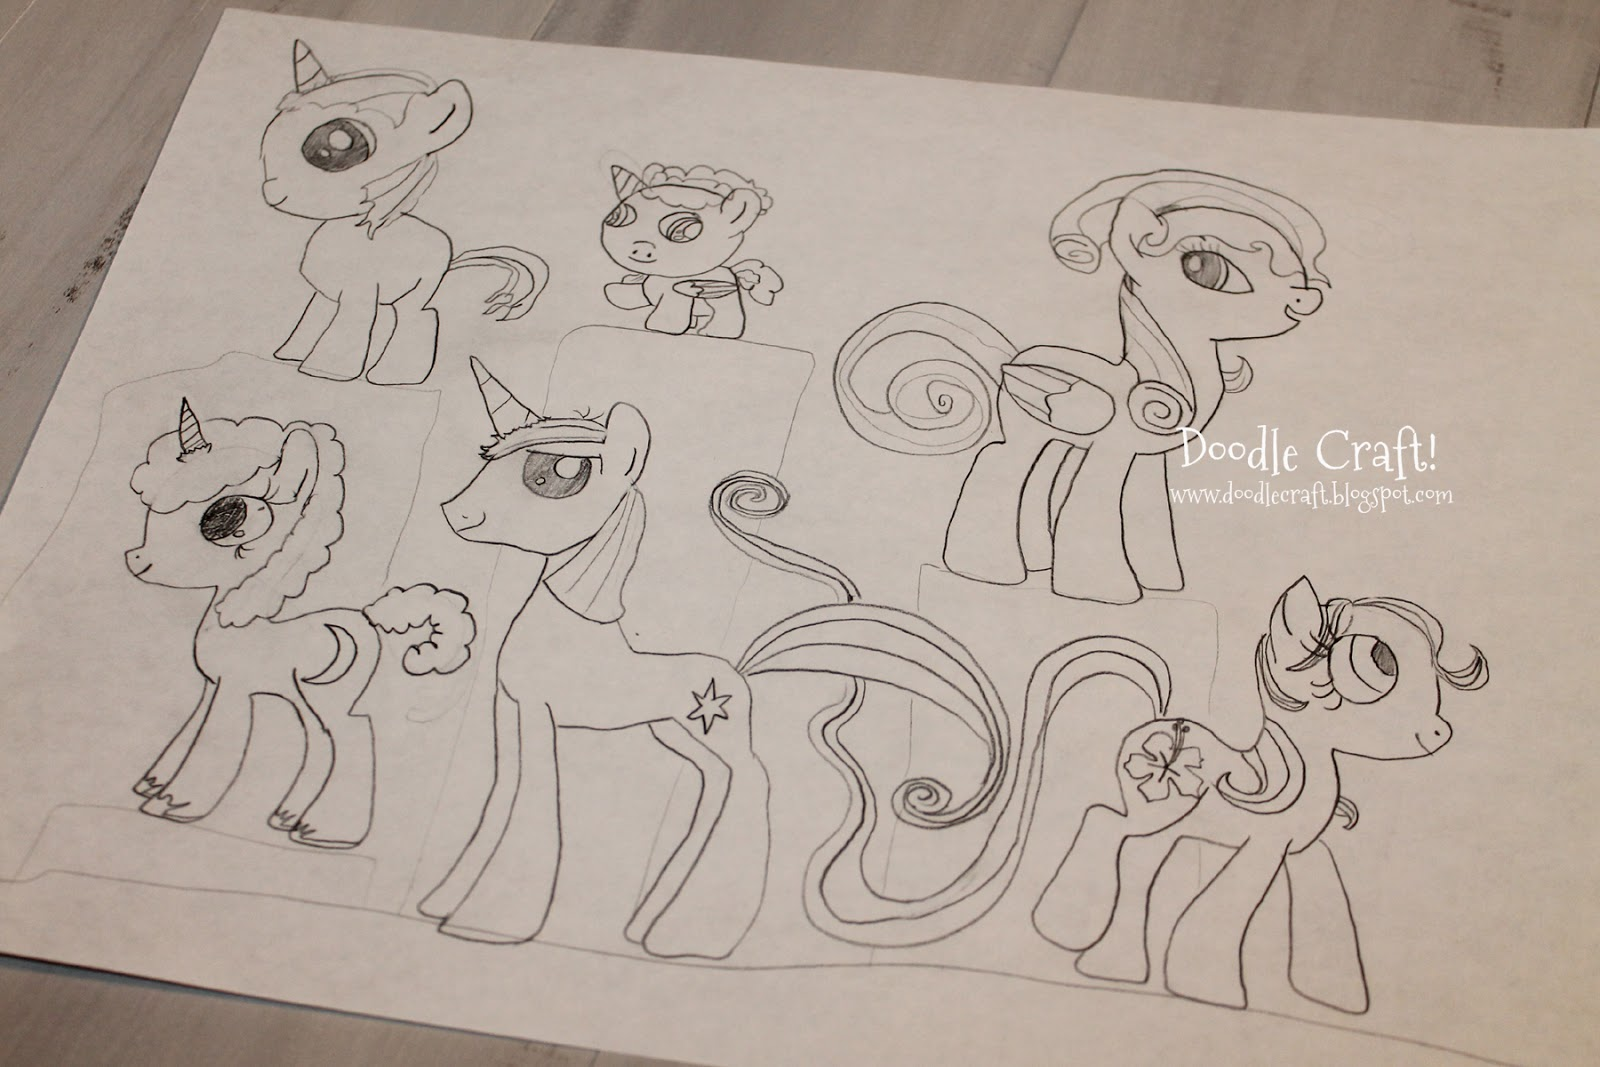 Uncategorized My Little Pony Drawing Games doodlecraft design and draw your own my little pony